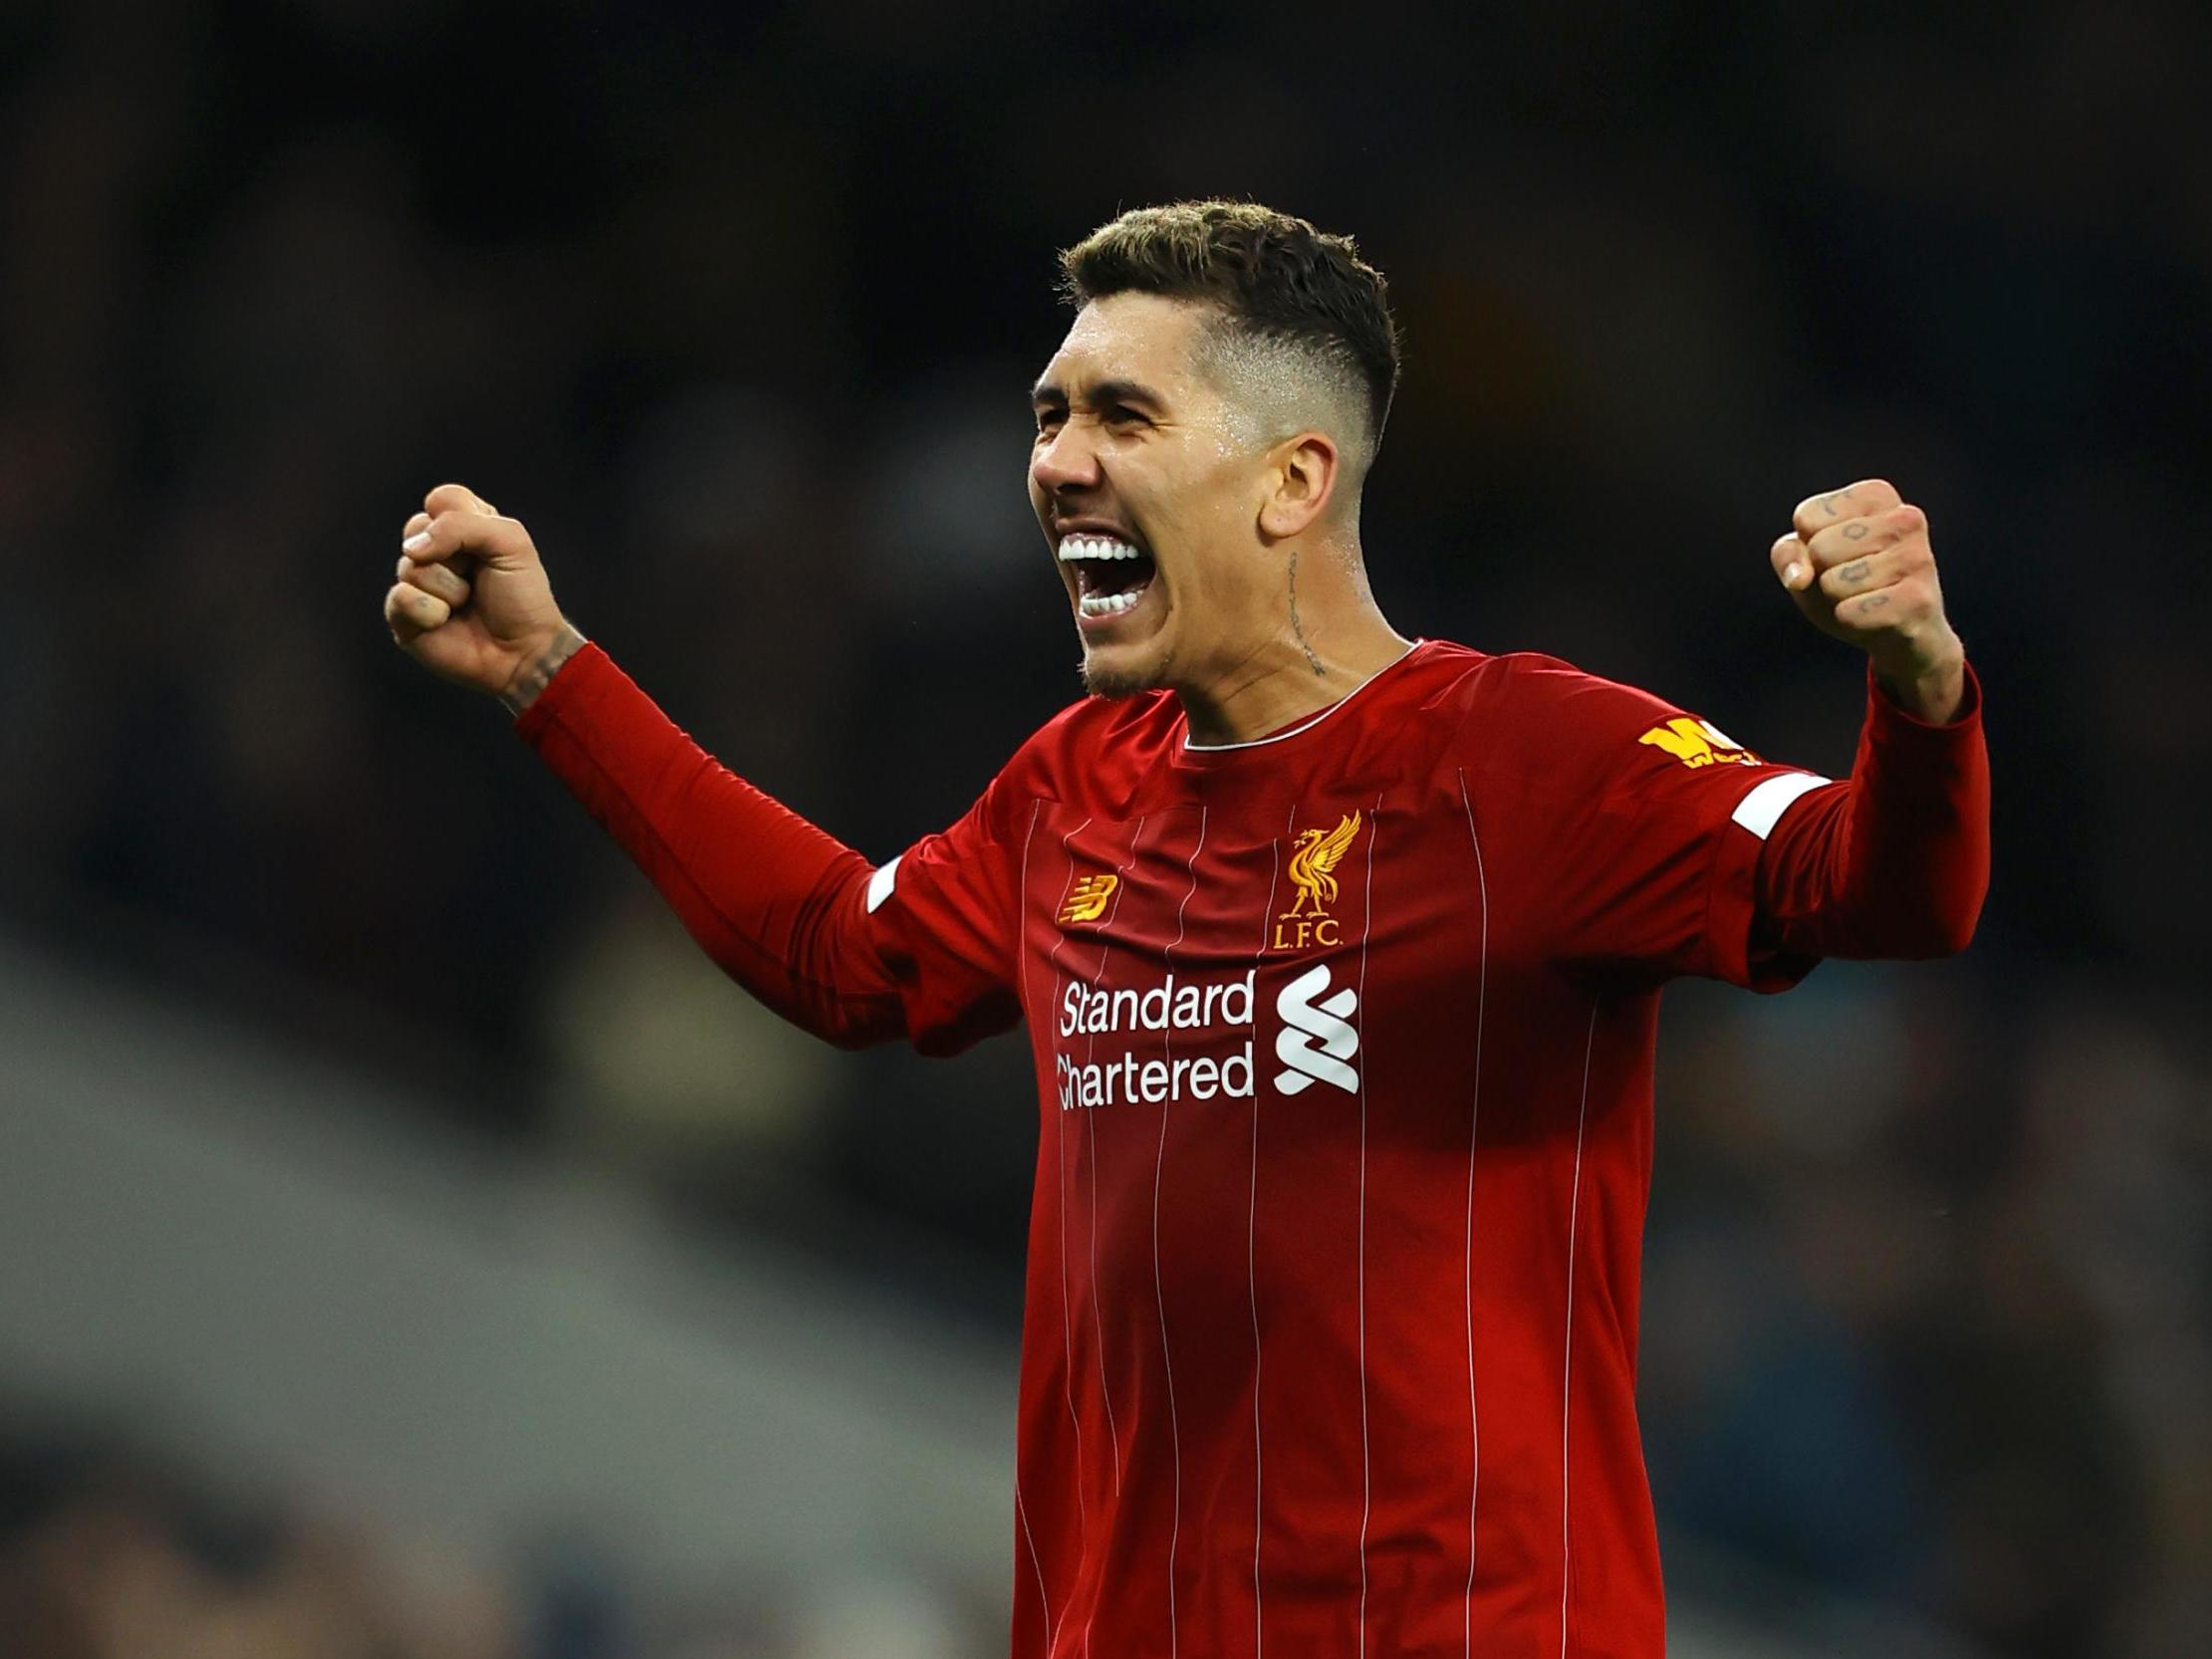 Wolves vs Liverpool player ratings: Roberto Firmino the hero as visitors leave it late in 2-1 win